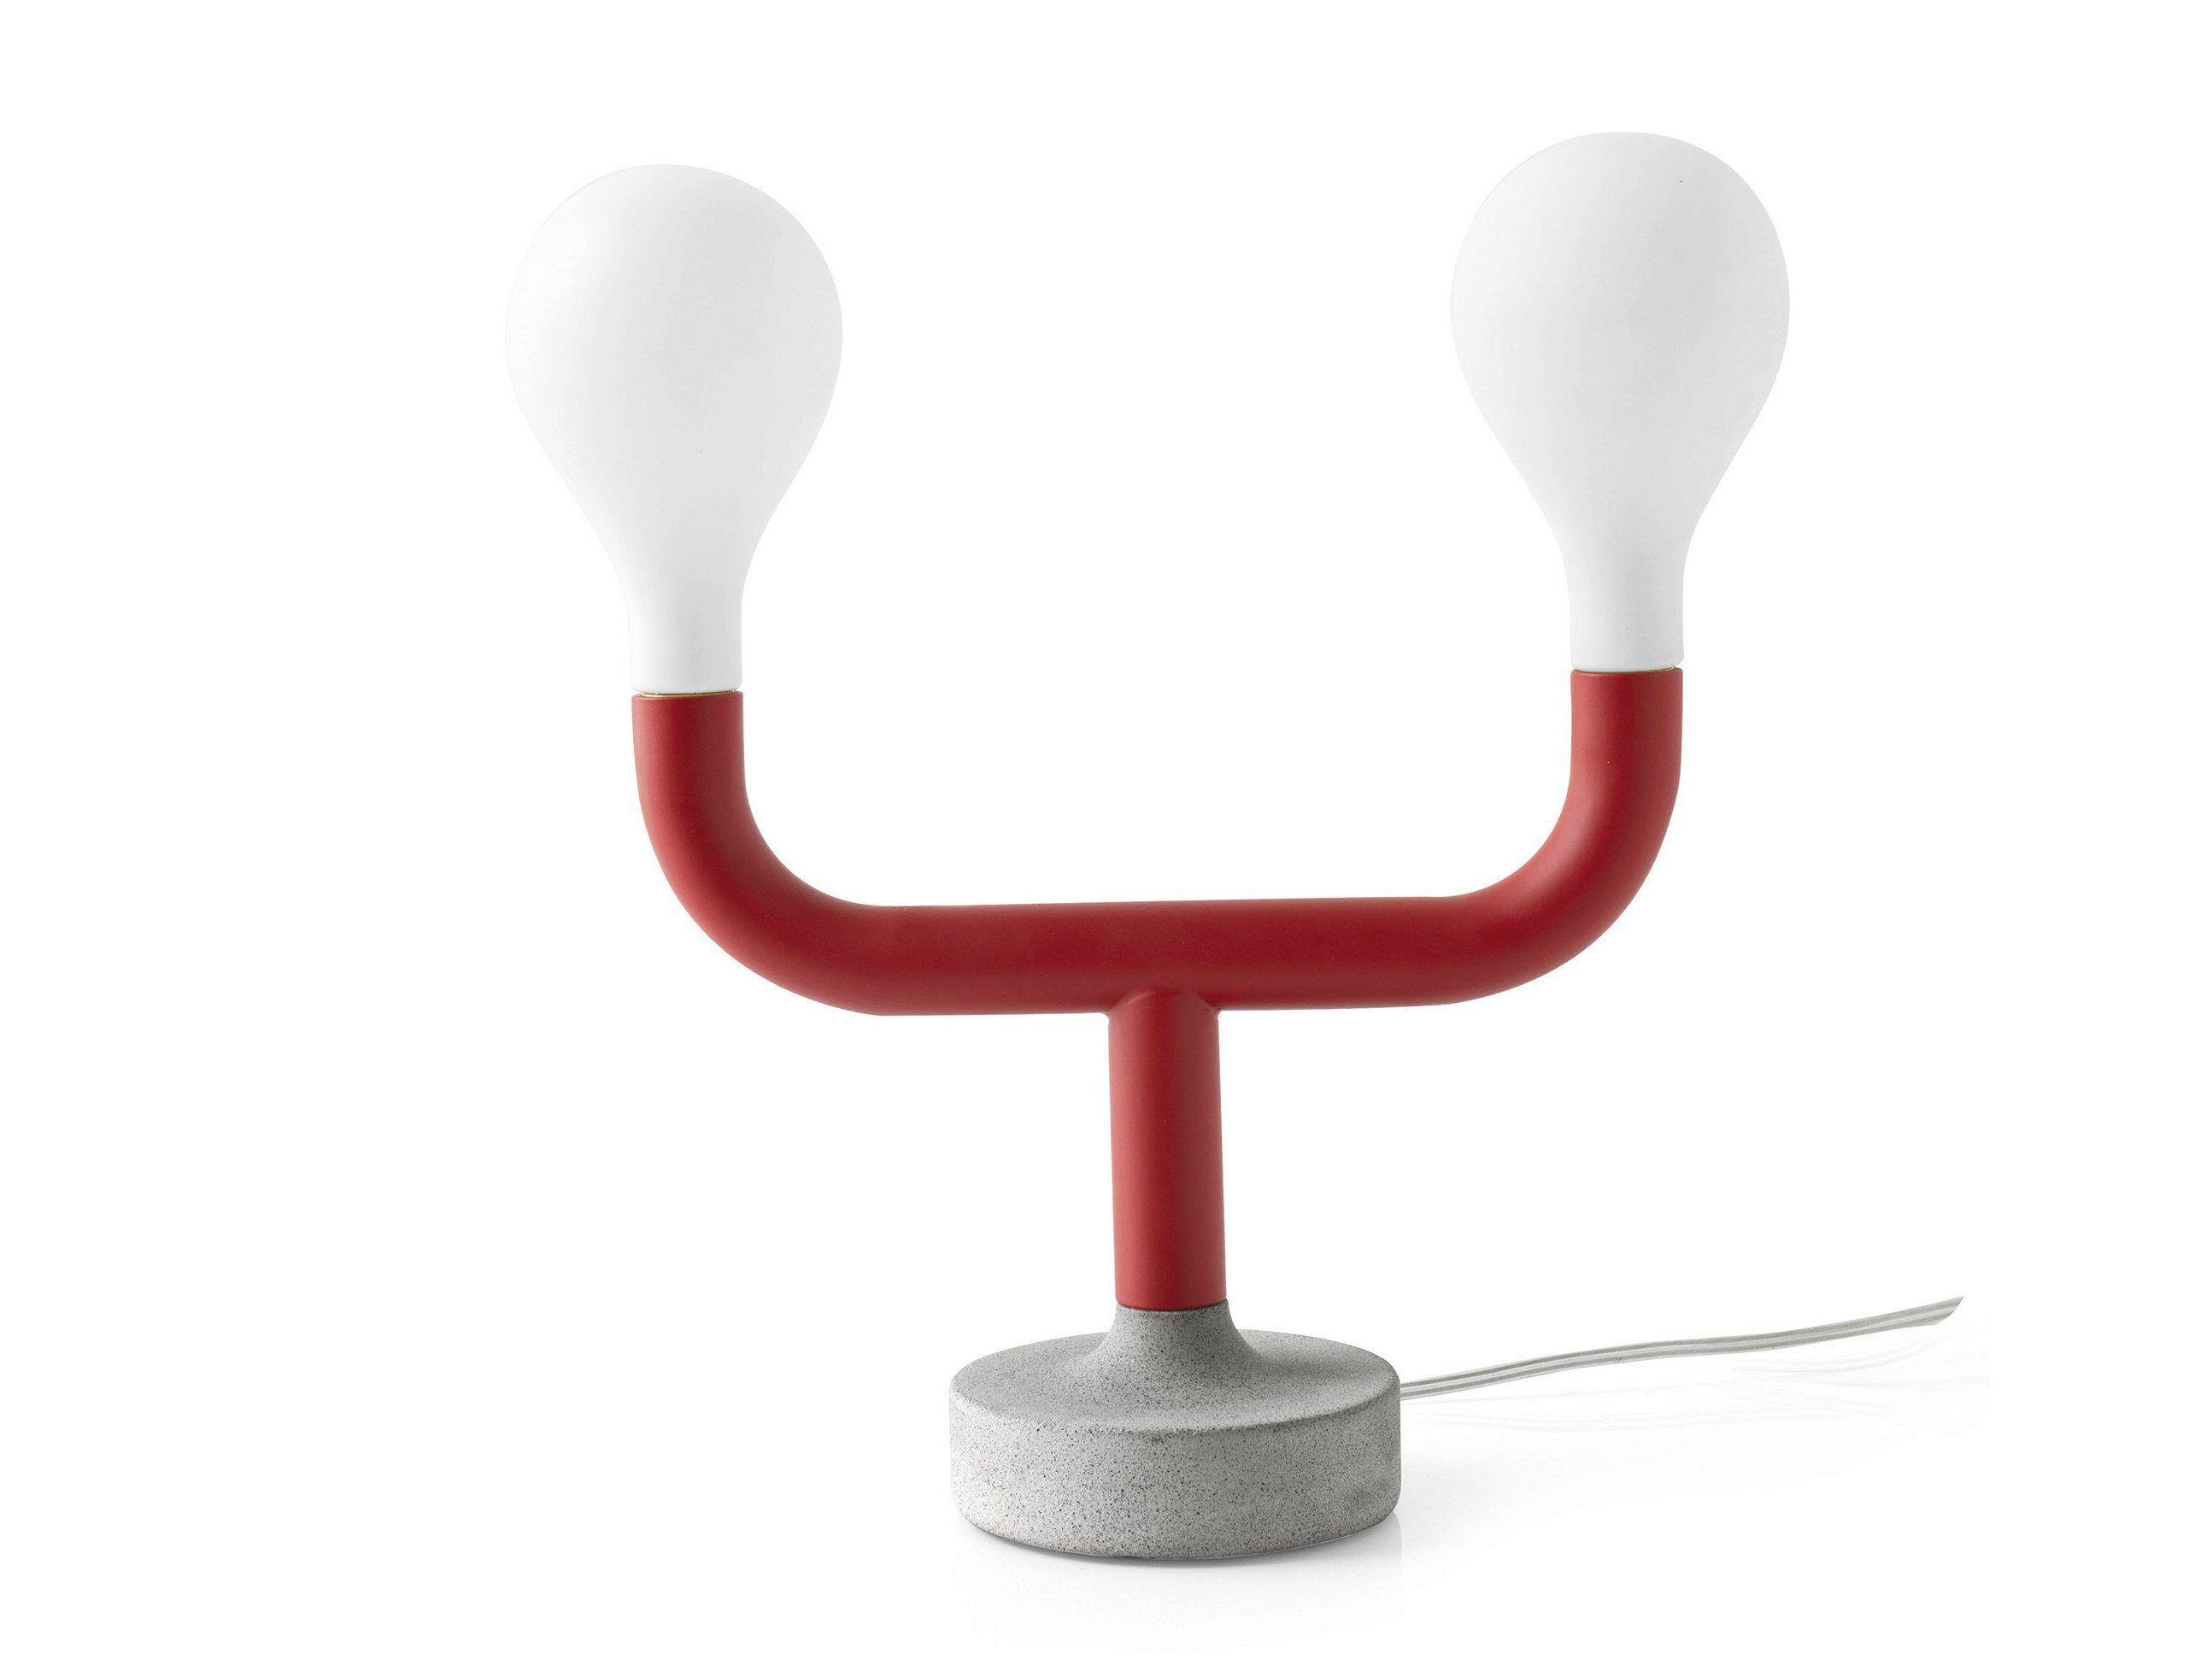 LED METAL TABLE LAMP POM POM BY CALLIGARIS DESIGN MATTEO CIBIC